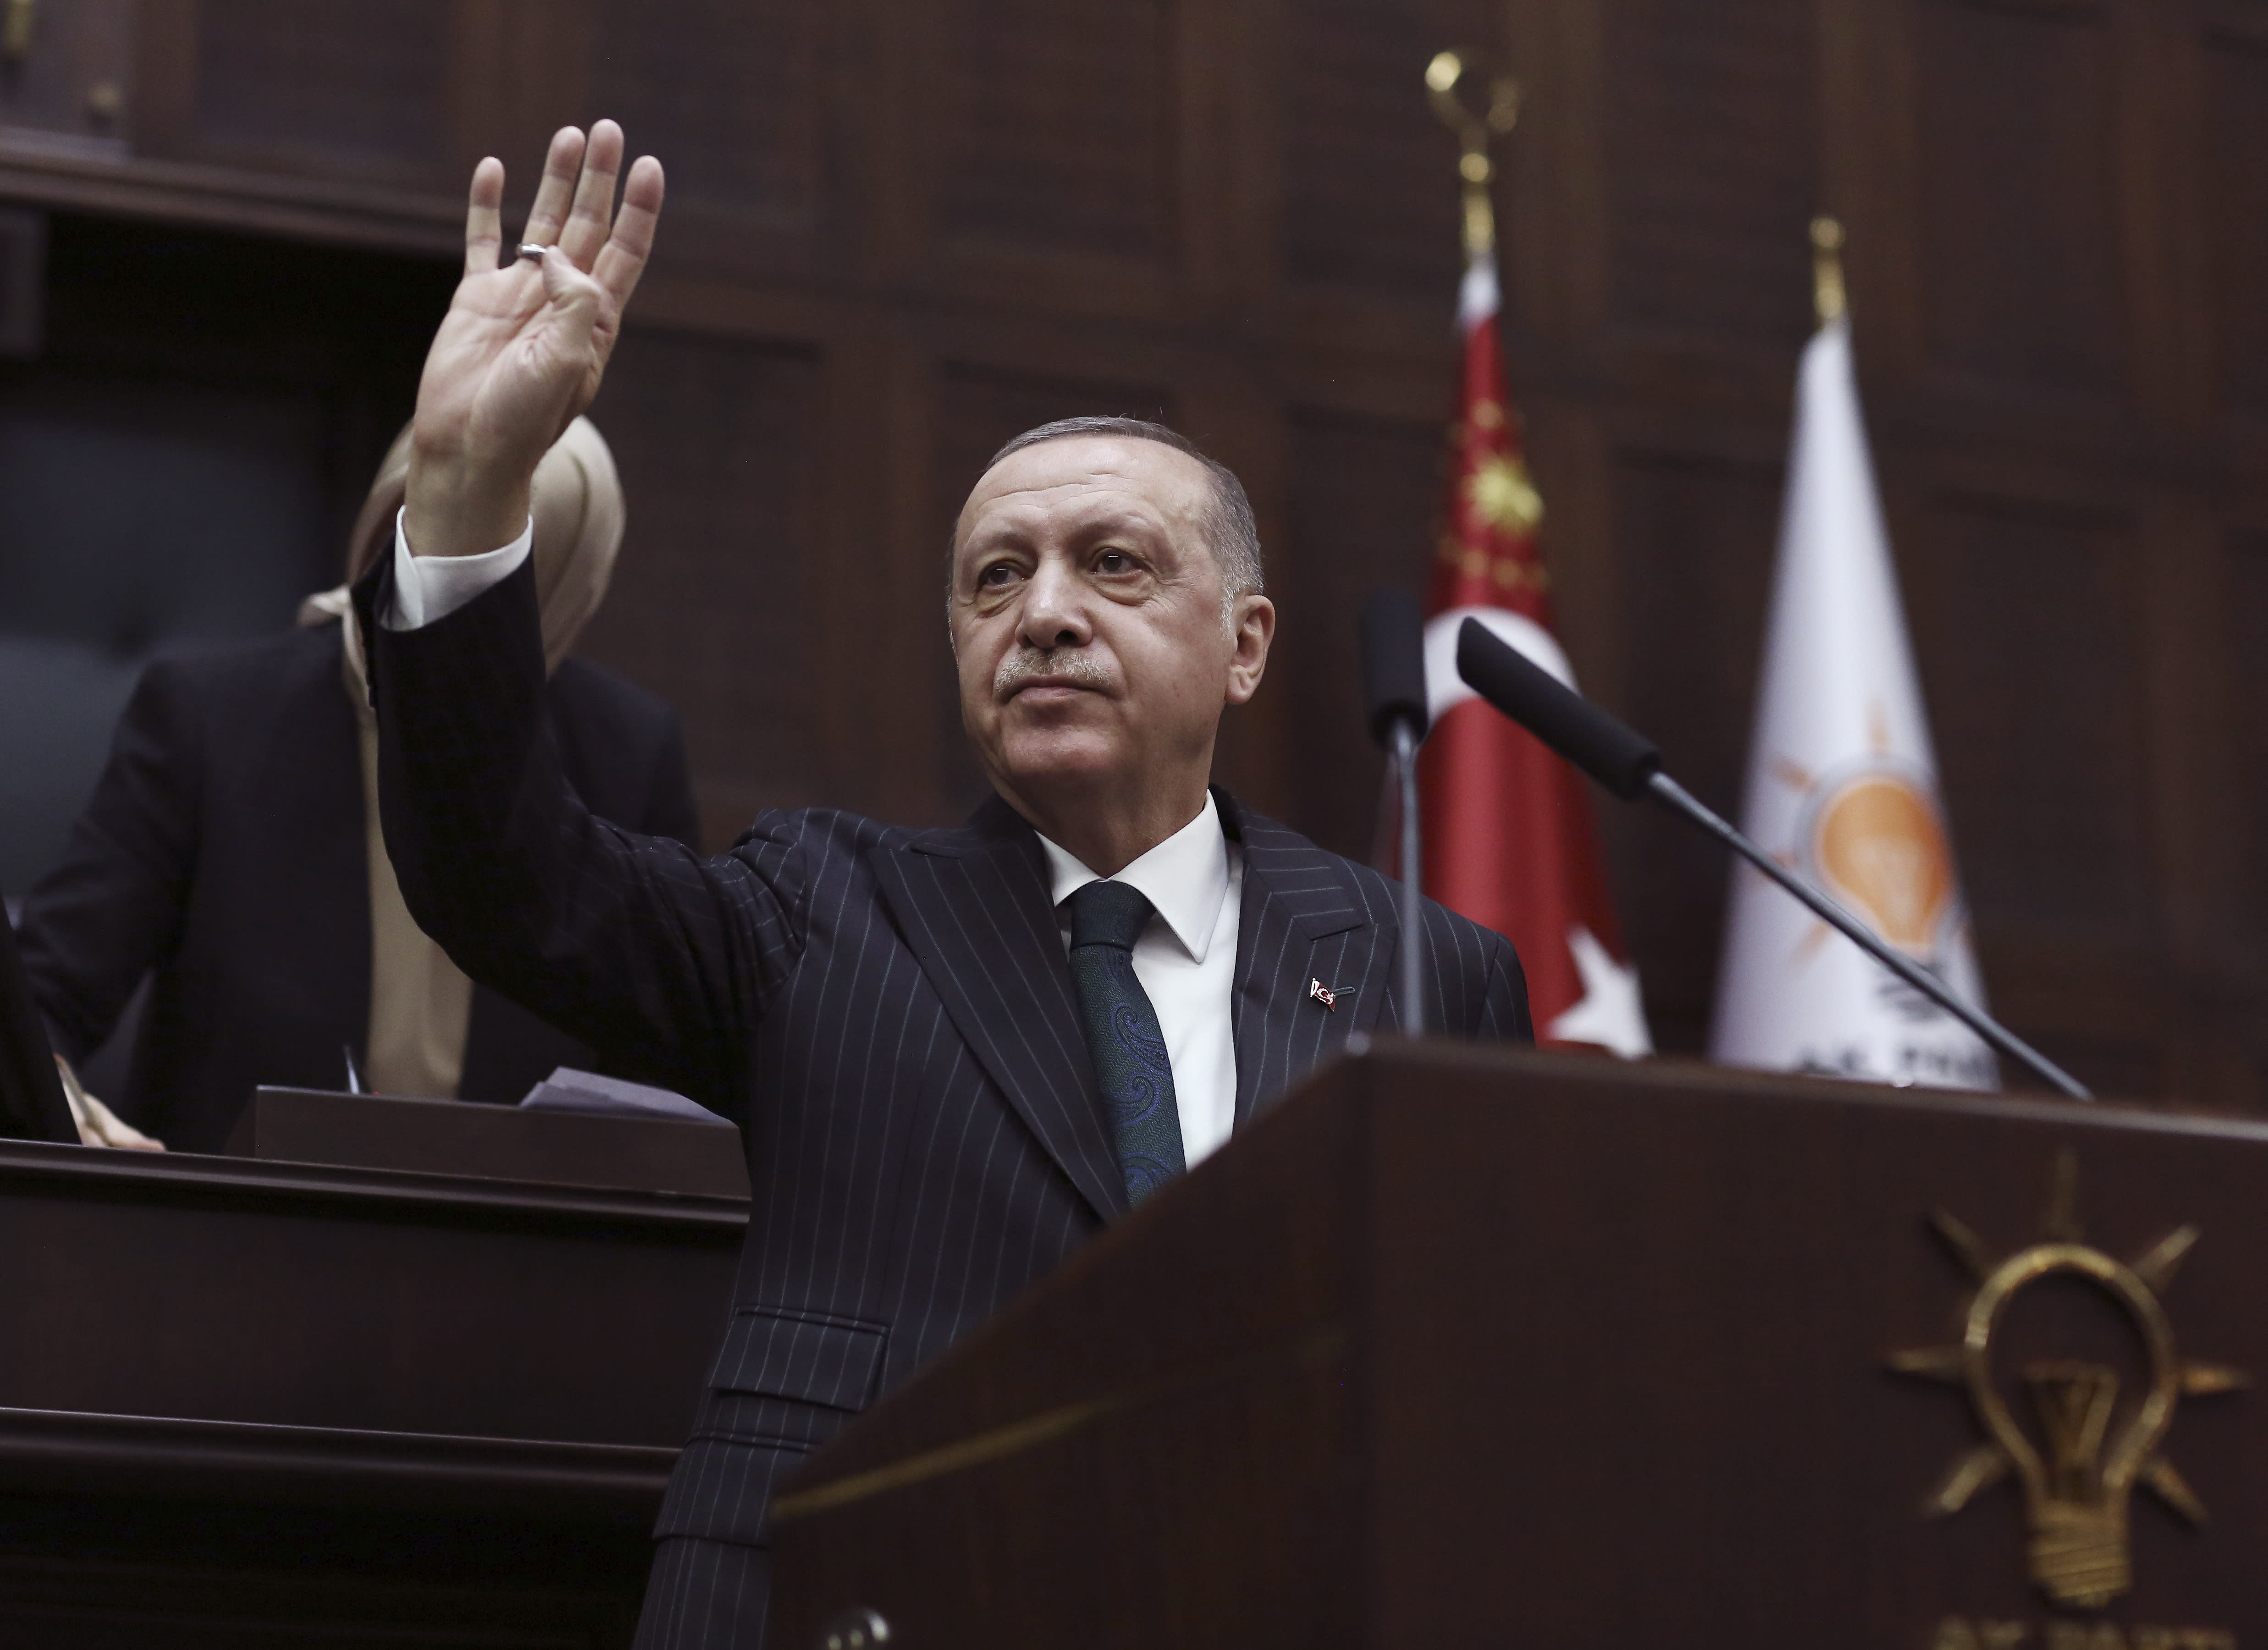 Turkish President Recep Tayyip Erdogan gestures as he addresses the members of his ruling party in Parliament, in Ankara, Turkey, Wednesday, March 4, 2020. Erdogan called on Greece and other European nations to respect migrants rights.(AP Photo/Burhan Ozbilici)